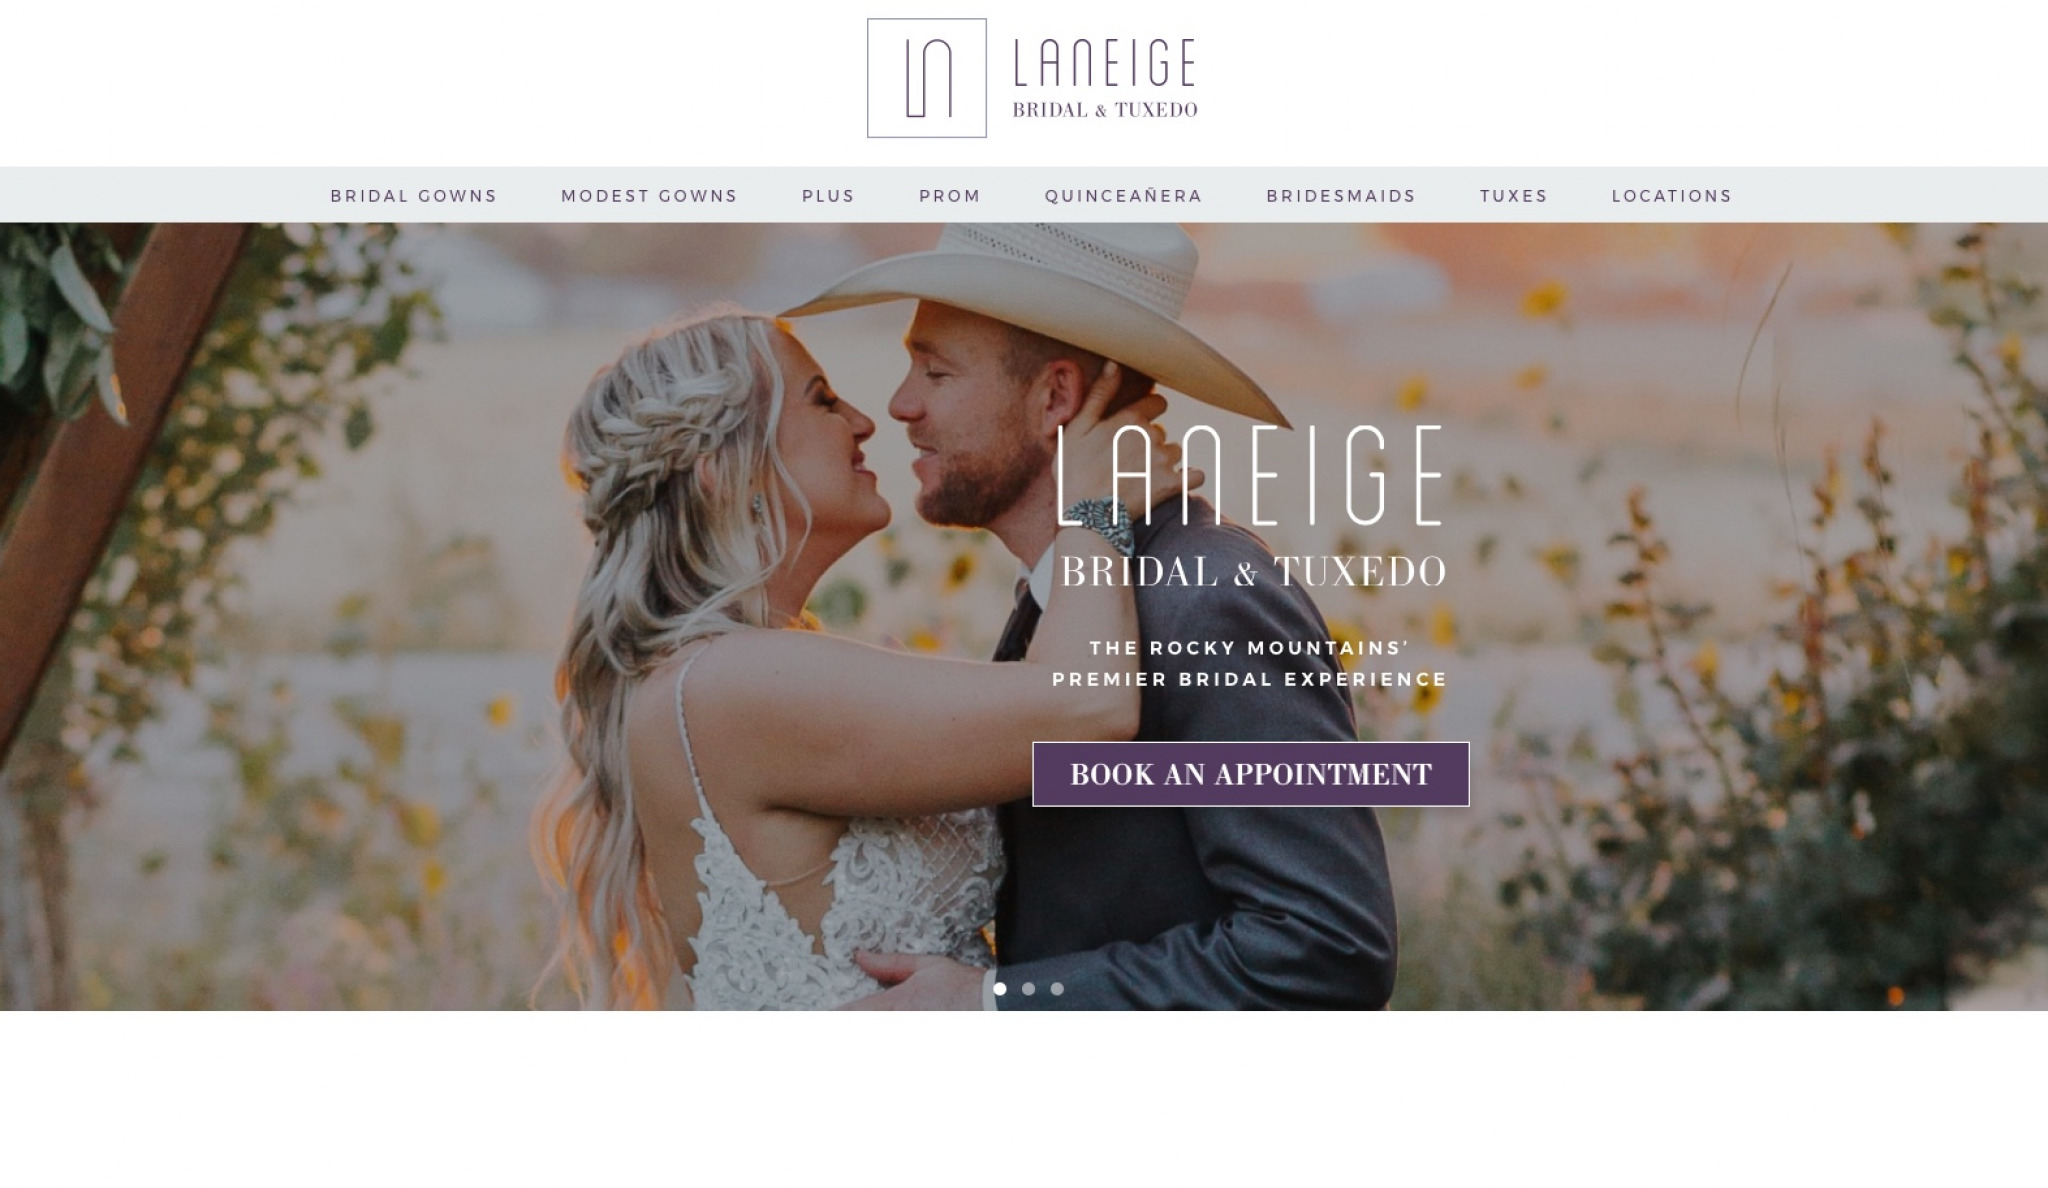 New Website for LaNeige Bridal & Tuxedo